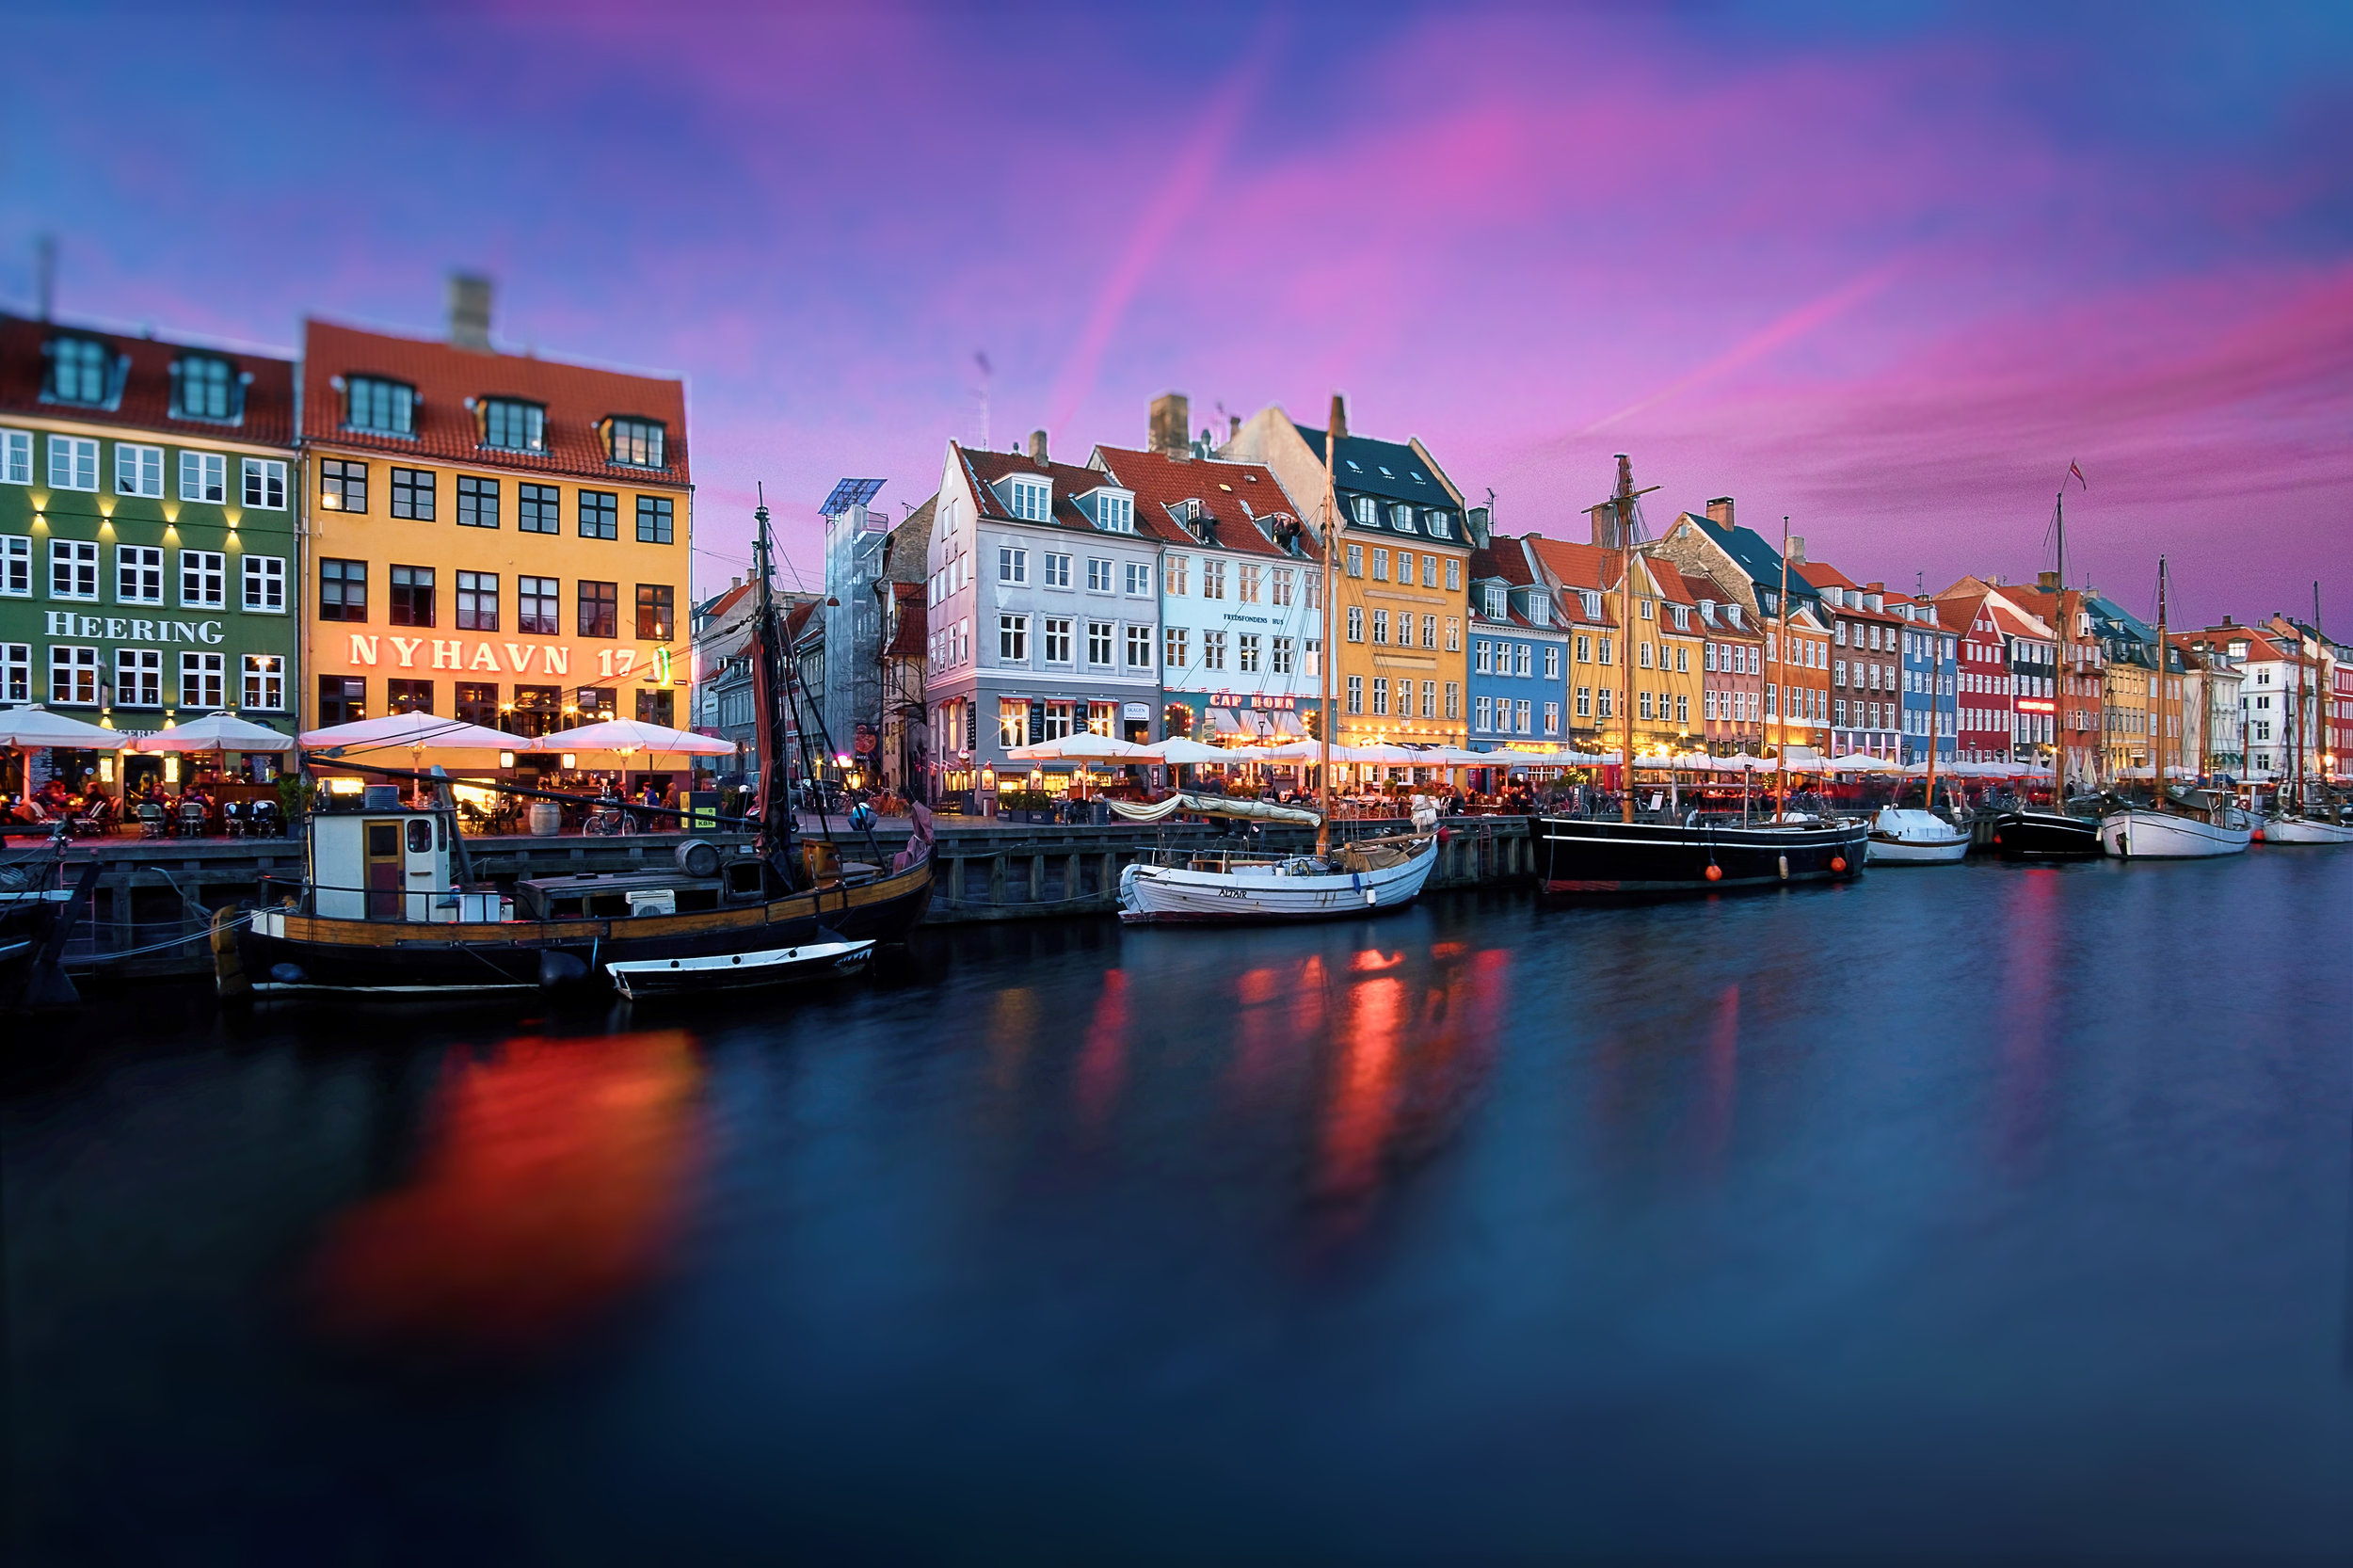 NYHAVN AT DUSK